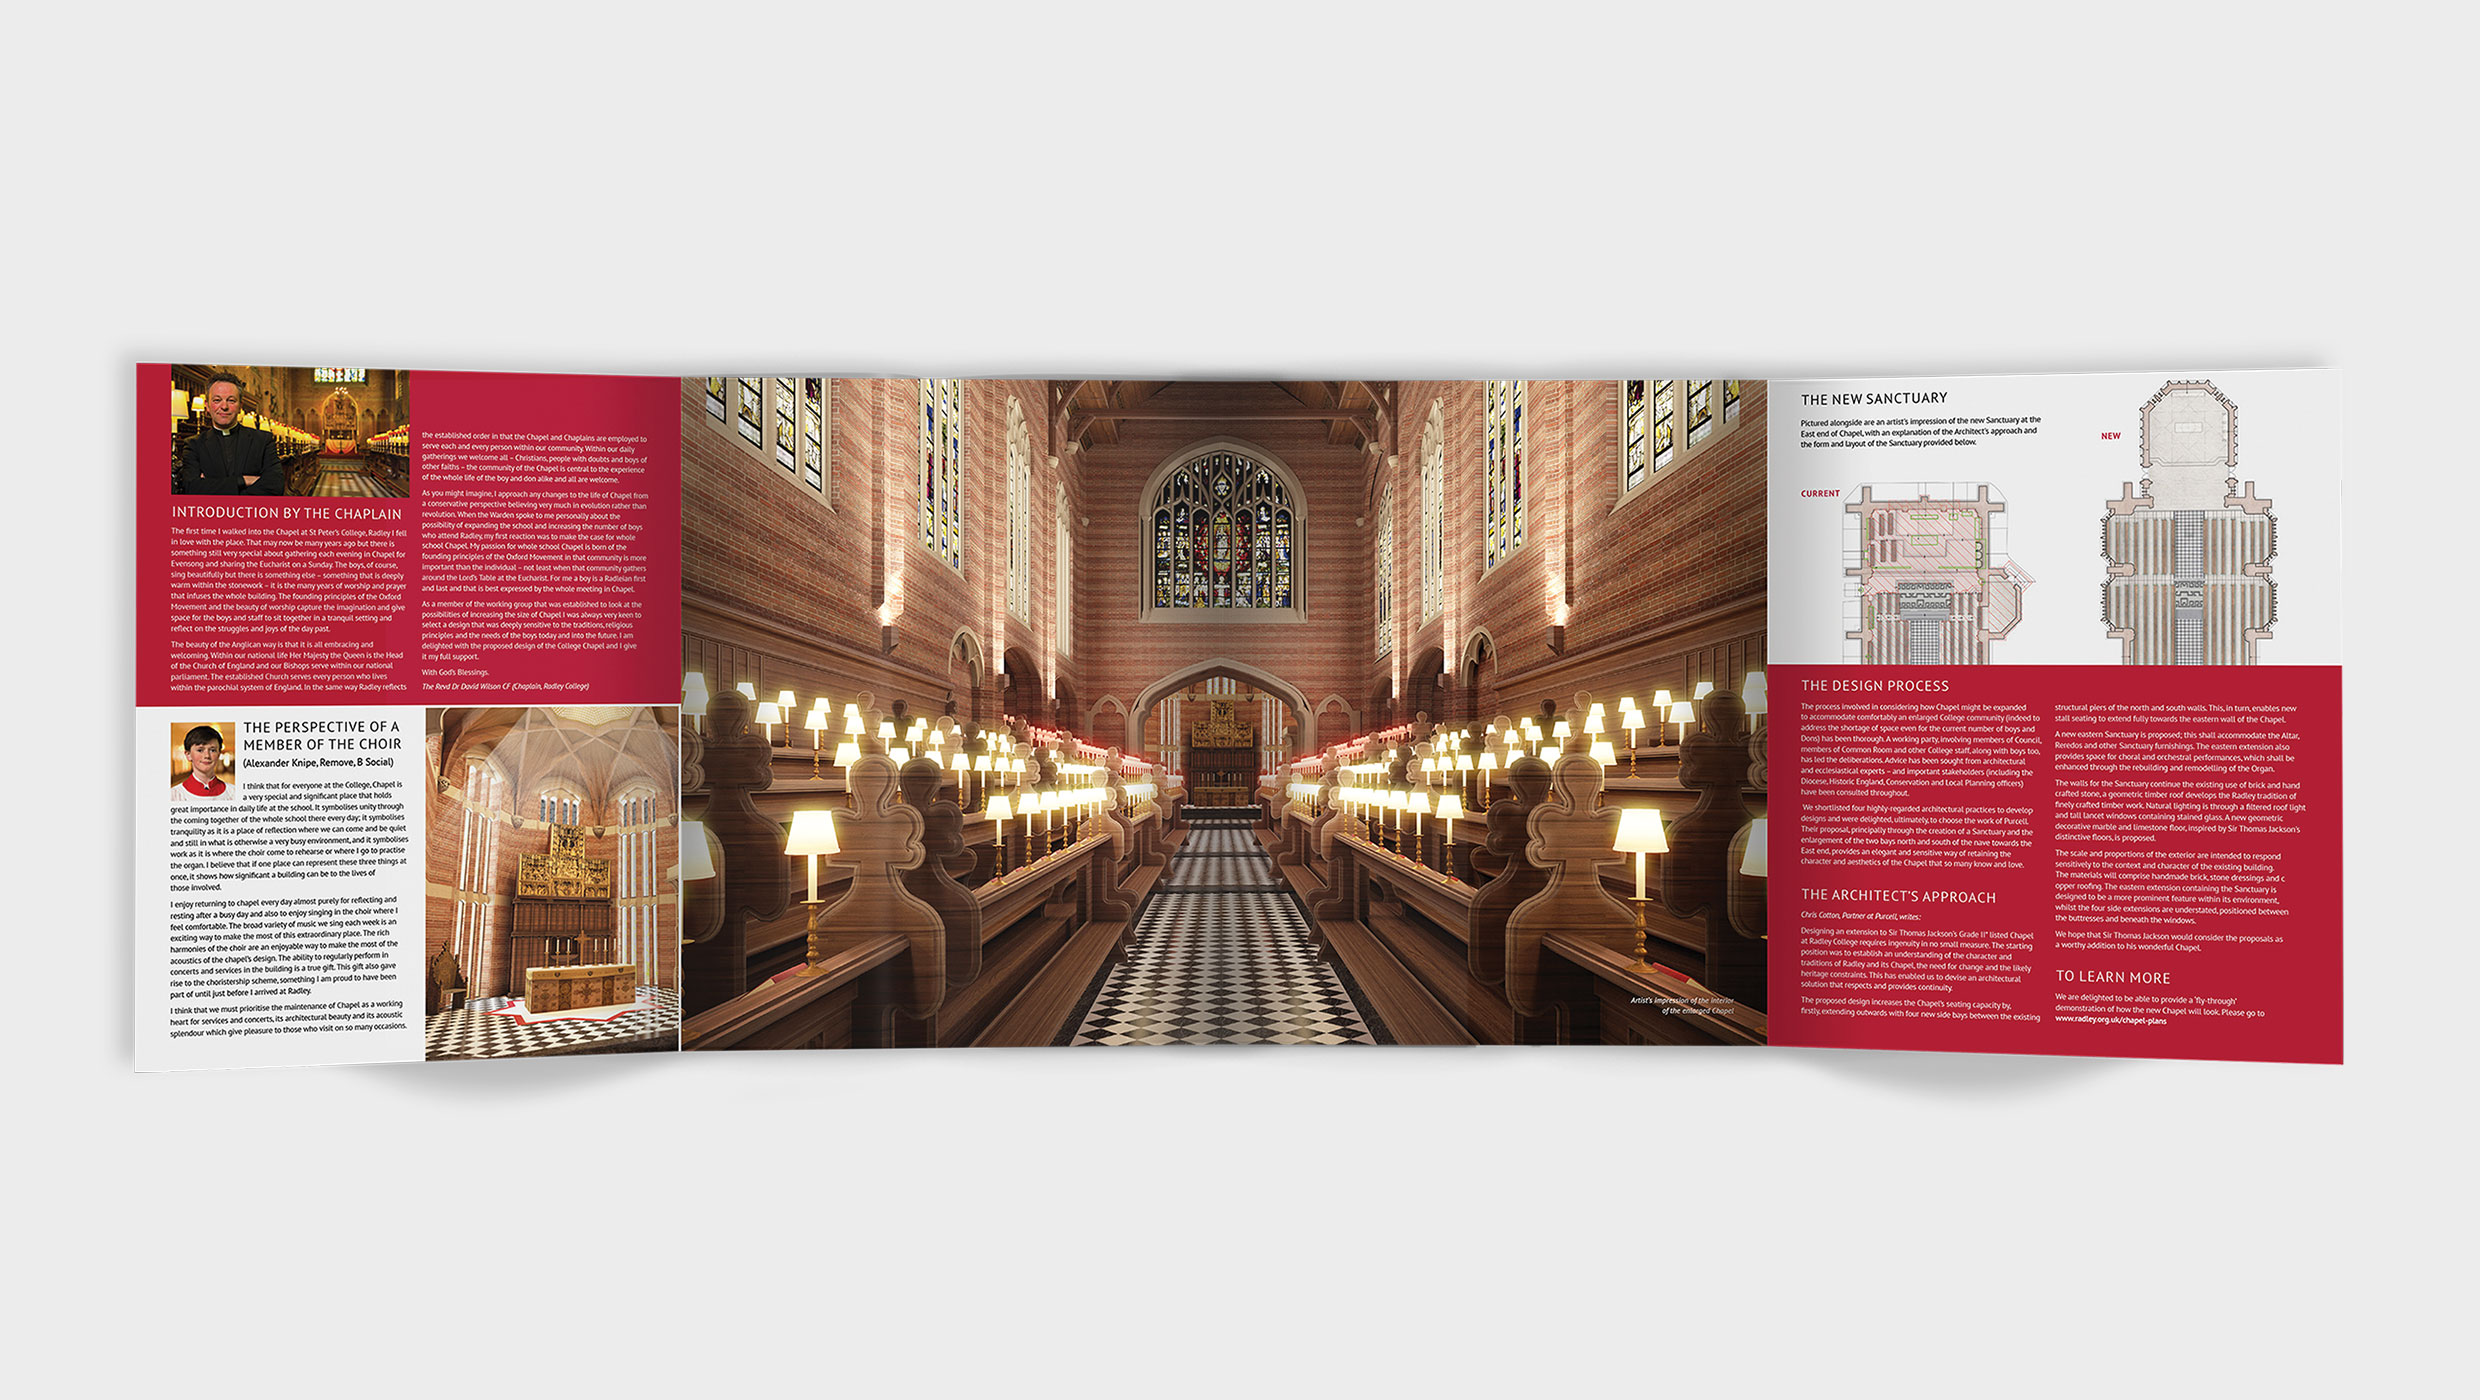 Foundation and development report for Radley College